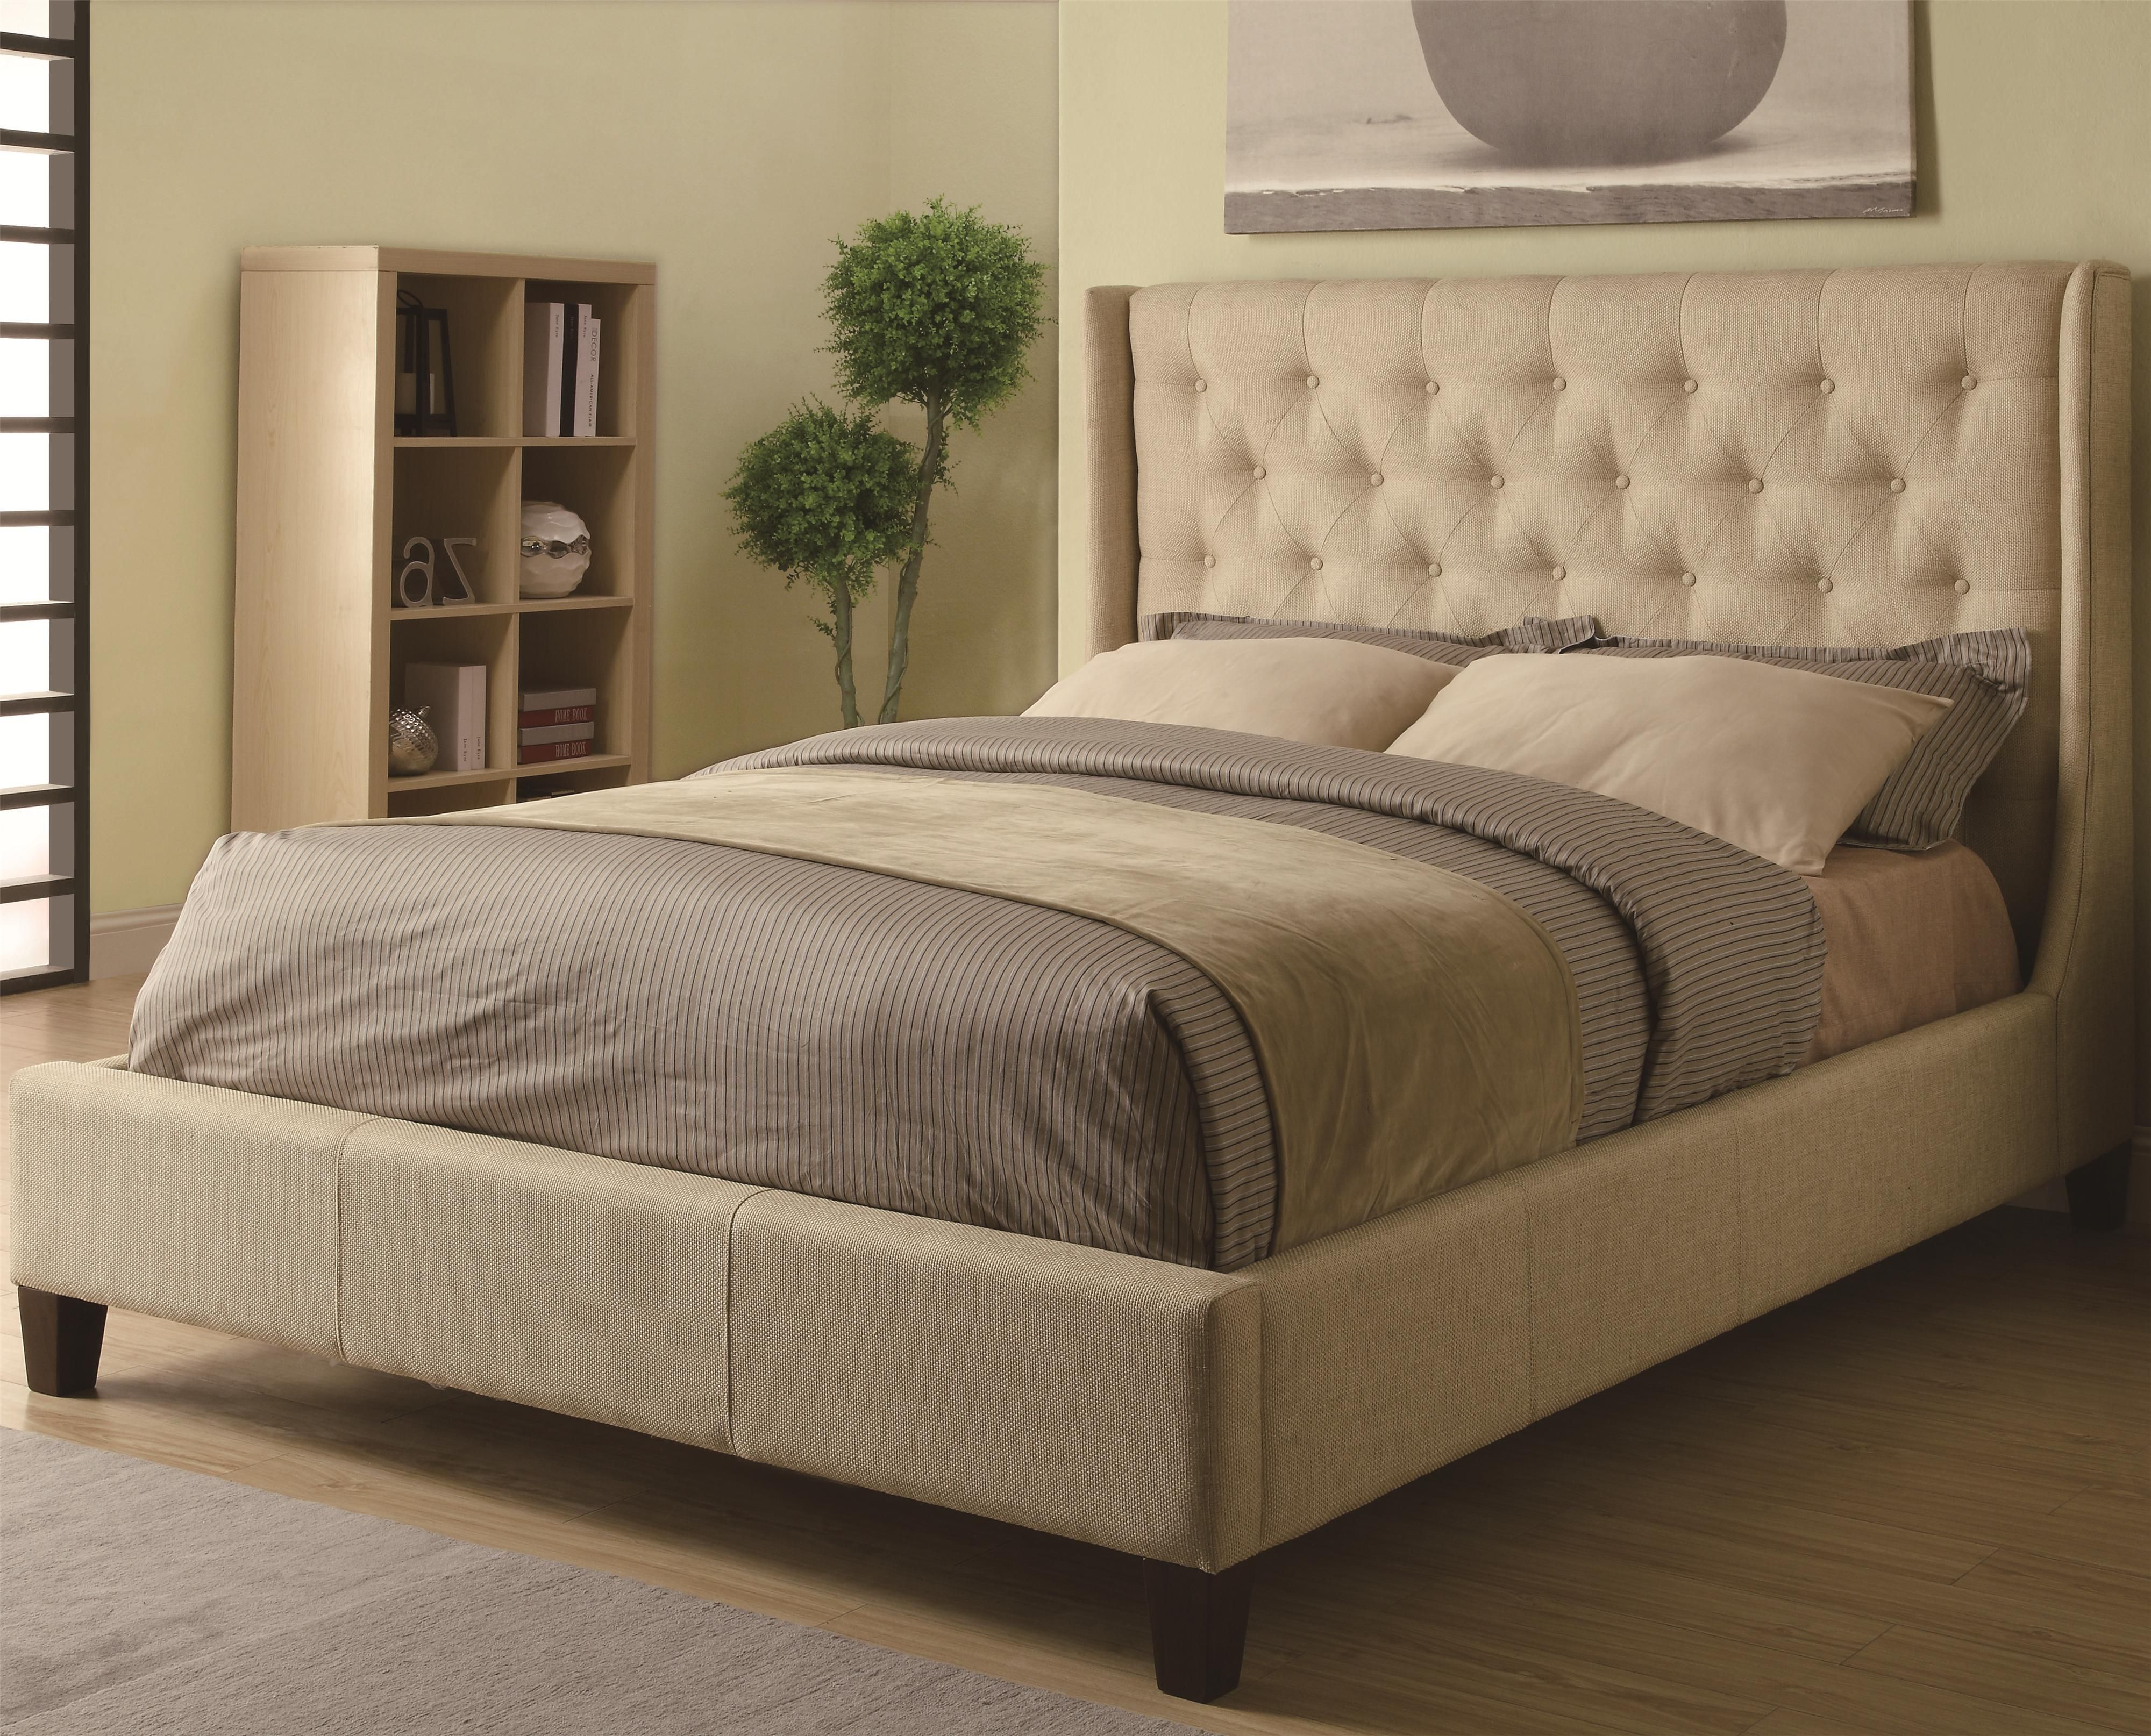 Upholstered Beds Queen Tan Upholstered Bed with Button